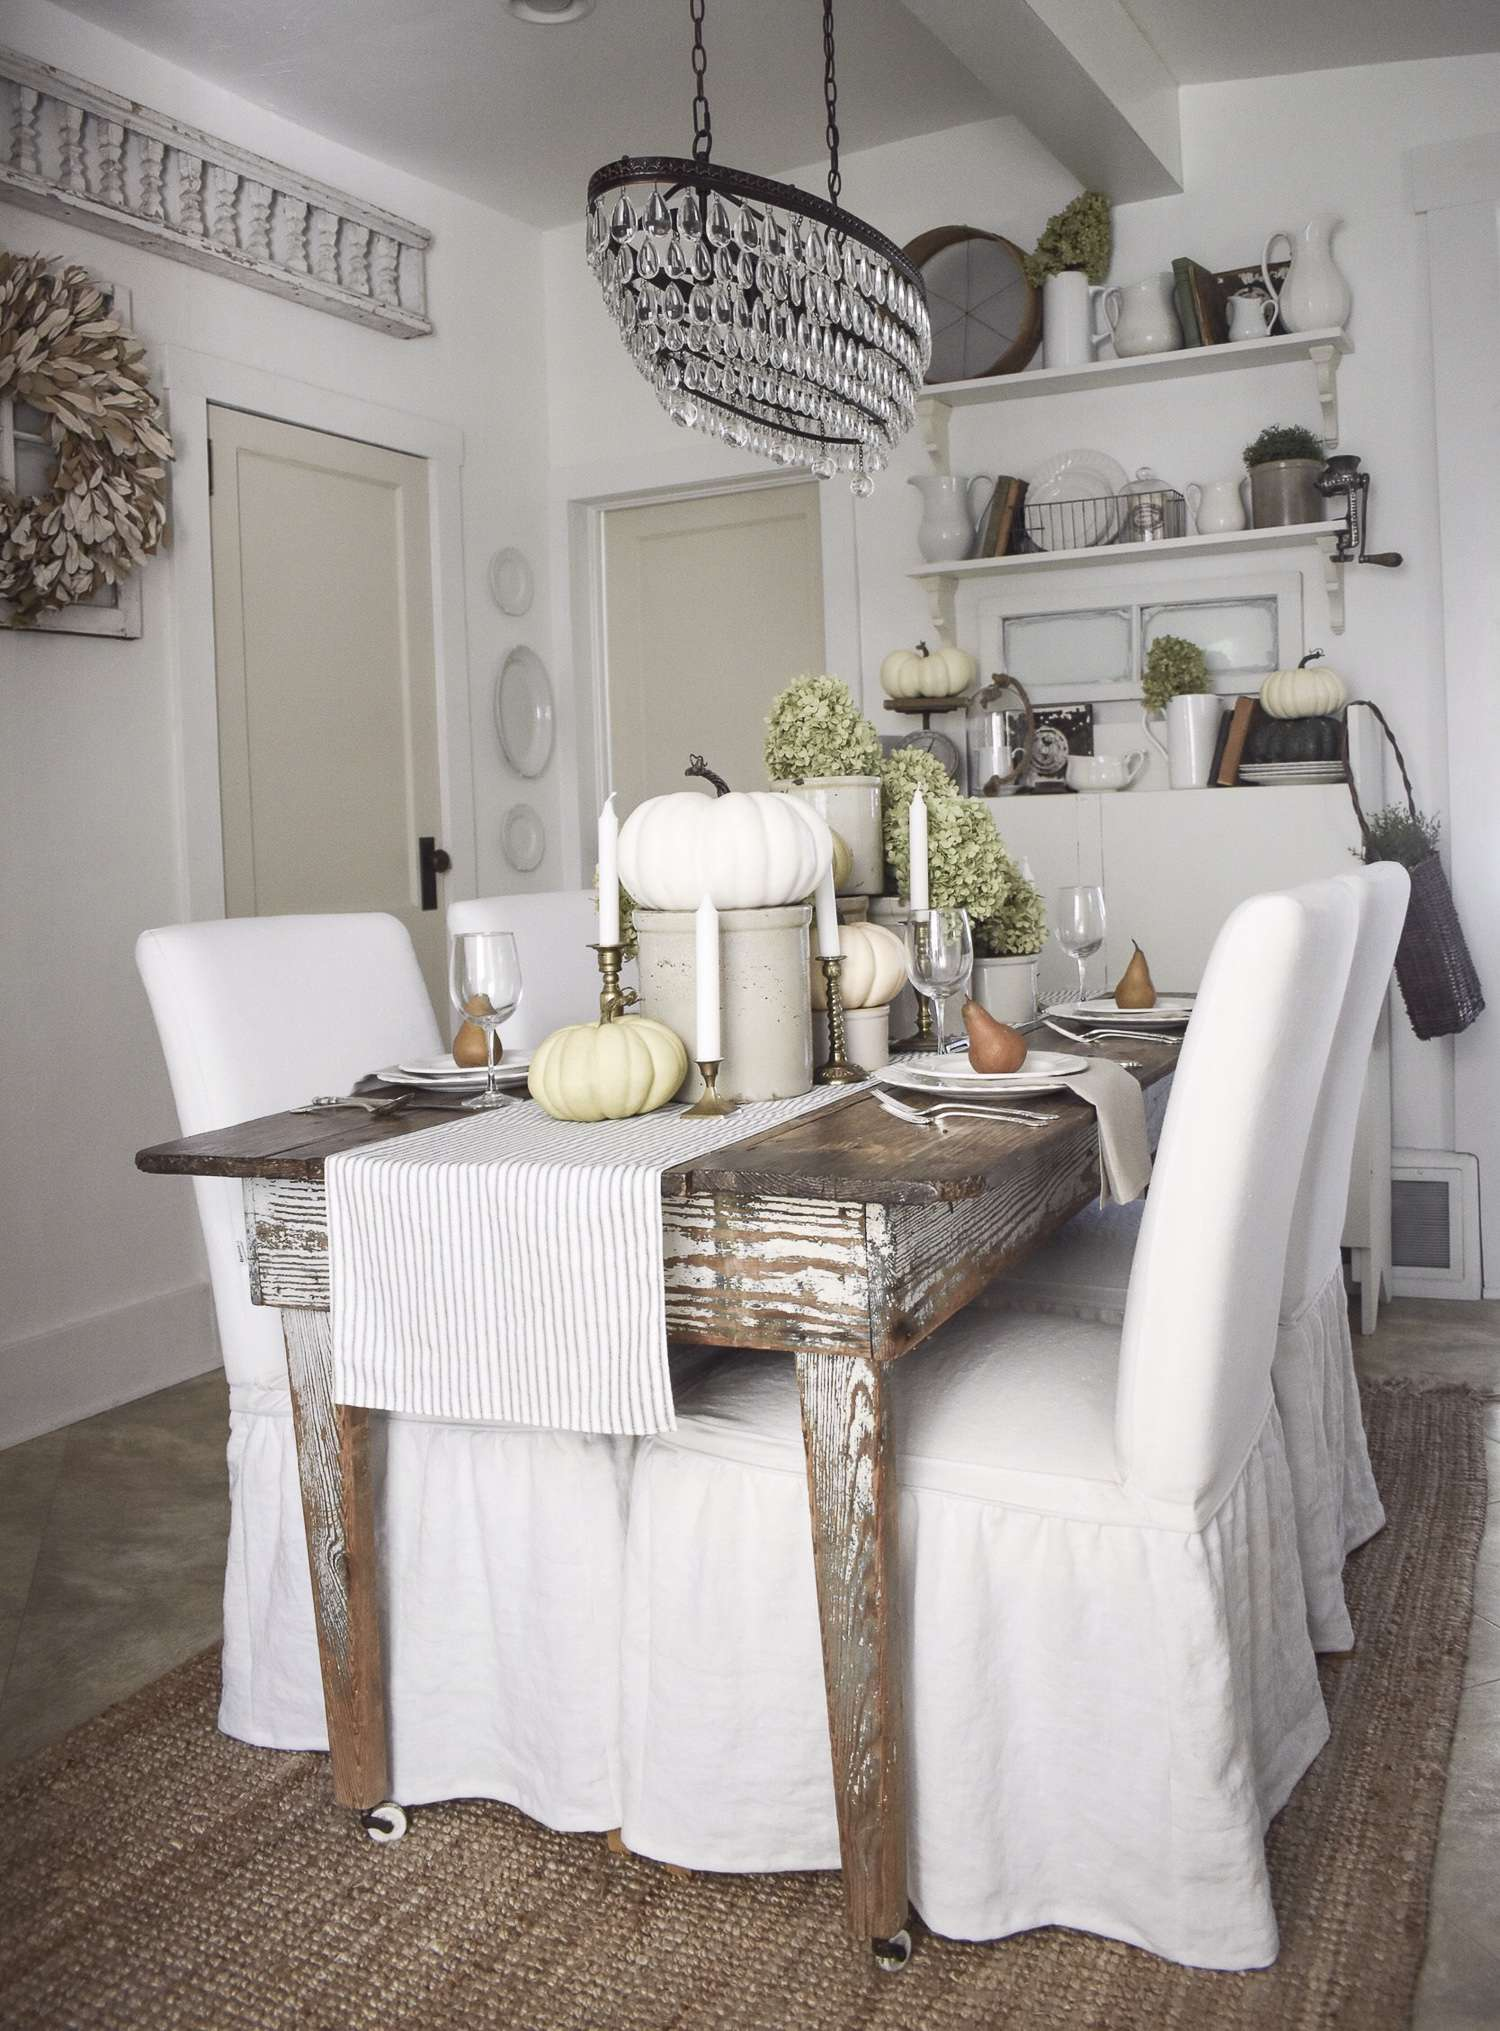 Do you love the vintage farmhouse design style? It is one of my favorite styles for home design and I have some amazing home inspiration to share today!